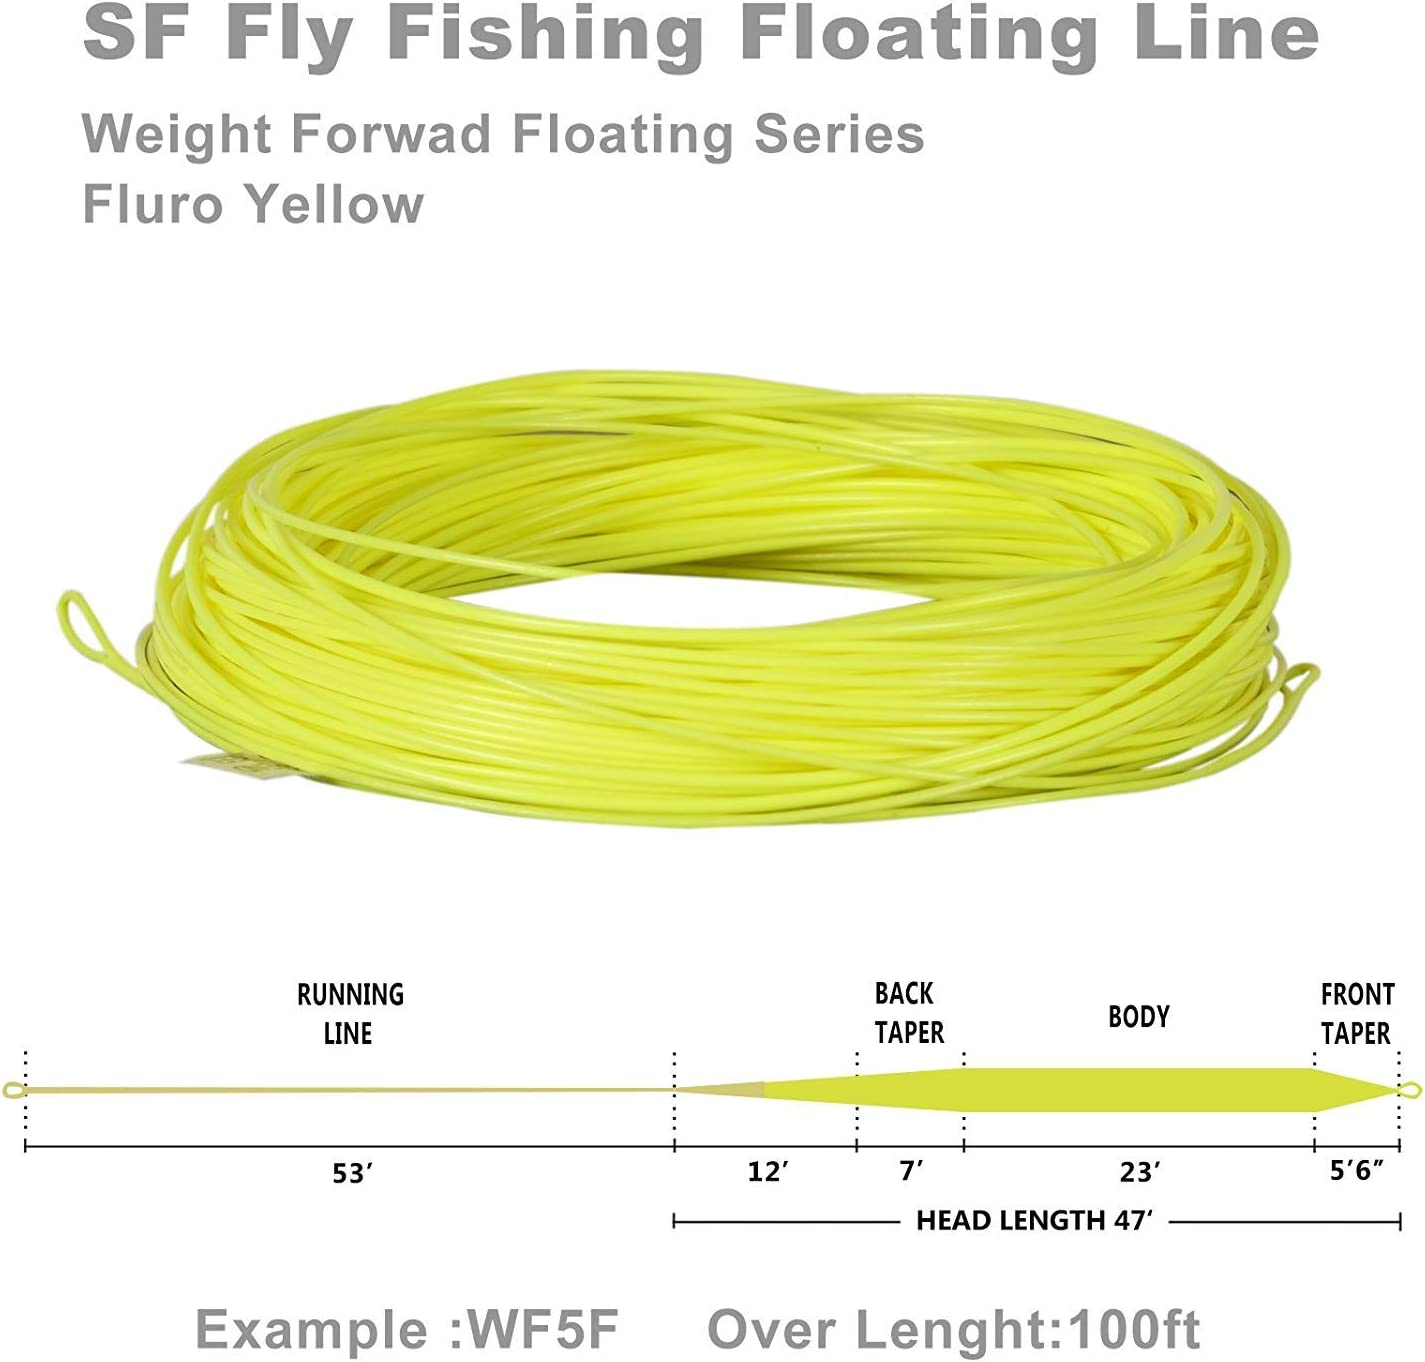 SF Weight Forward Floating Fly Fishing Line Welded Loop WF 1 2 3 4 5 6 7 8 9 wt